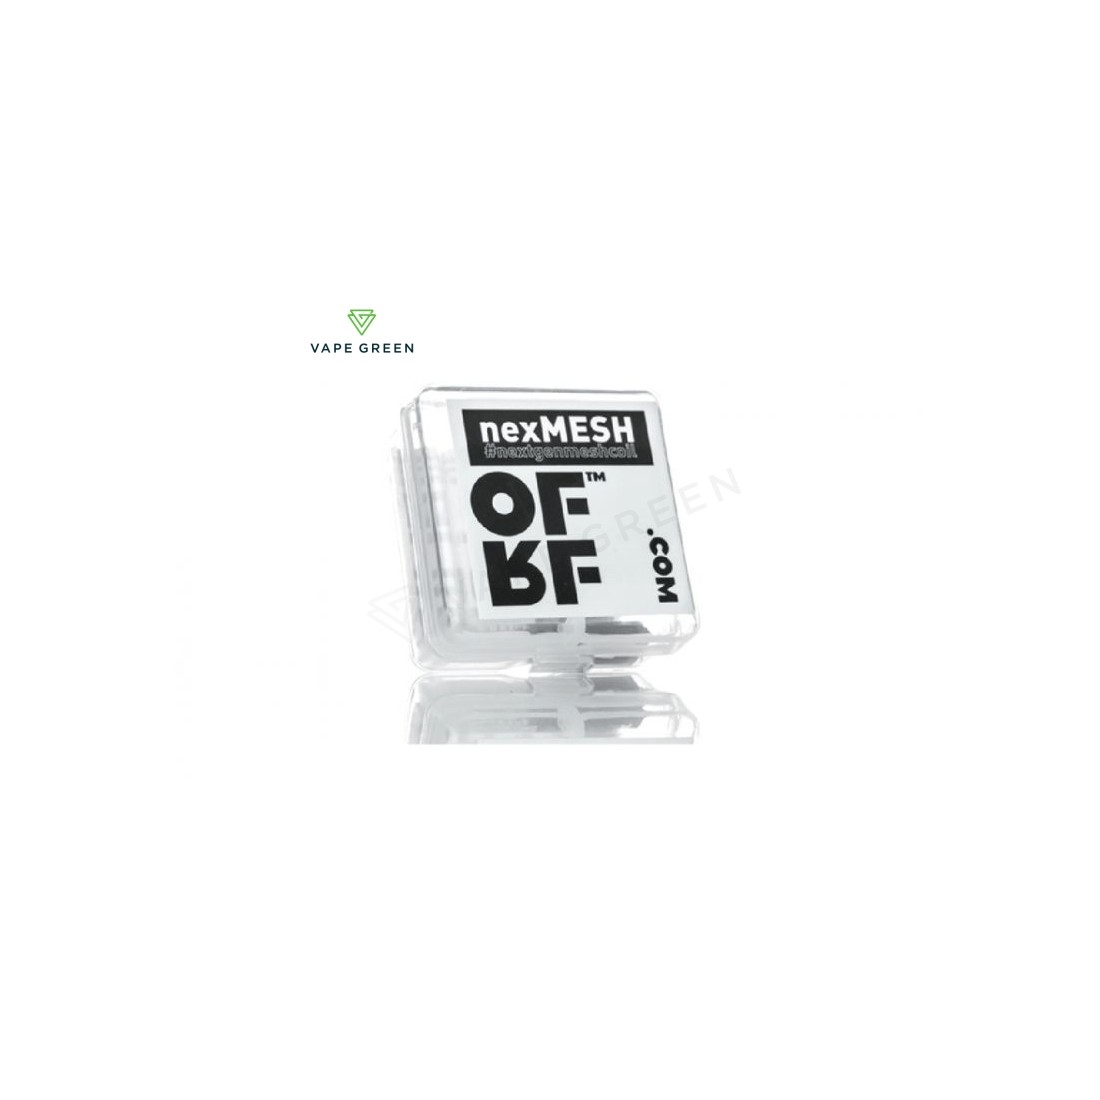 OFRF nexMesh Triple Density Mesh Coils For The Wotofo Profile pack of 10